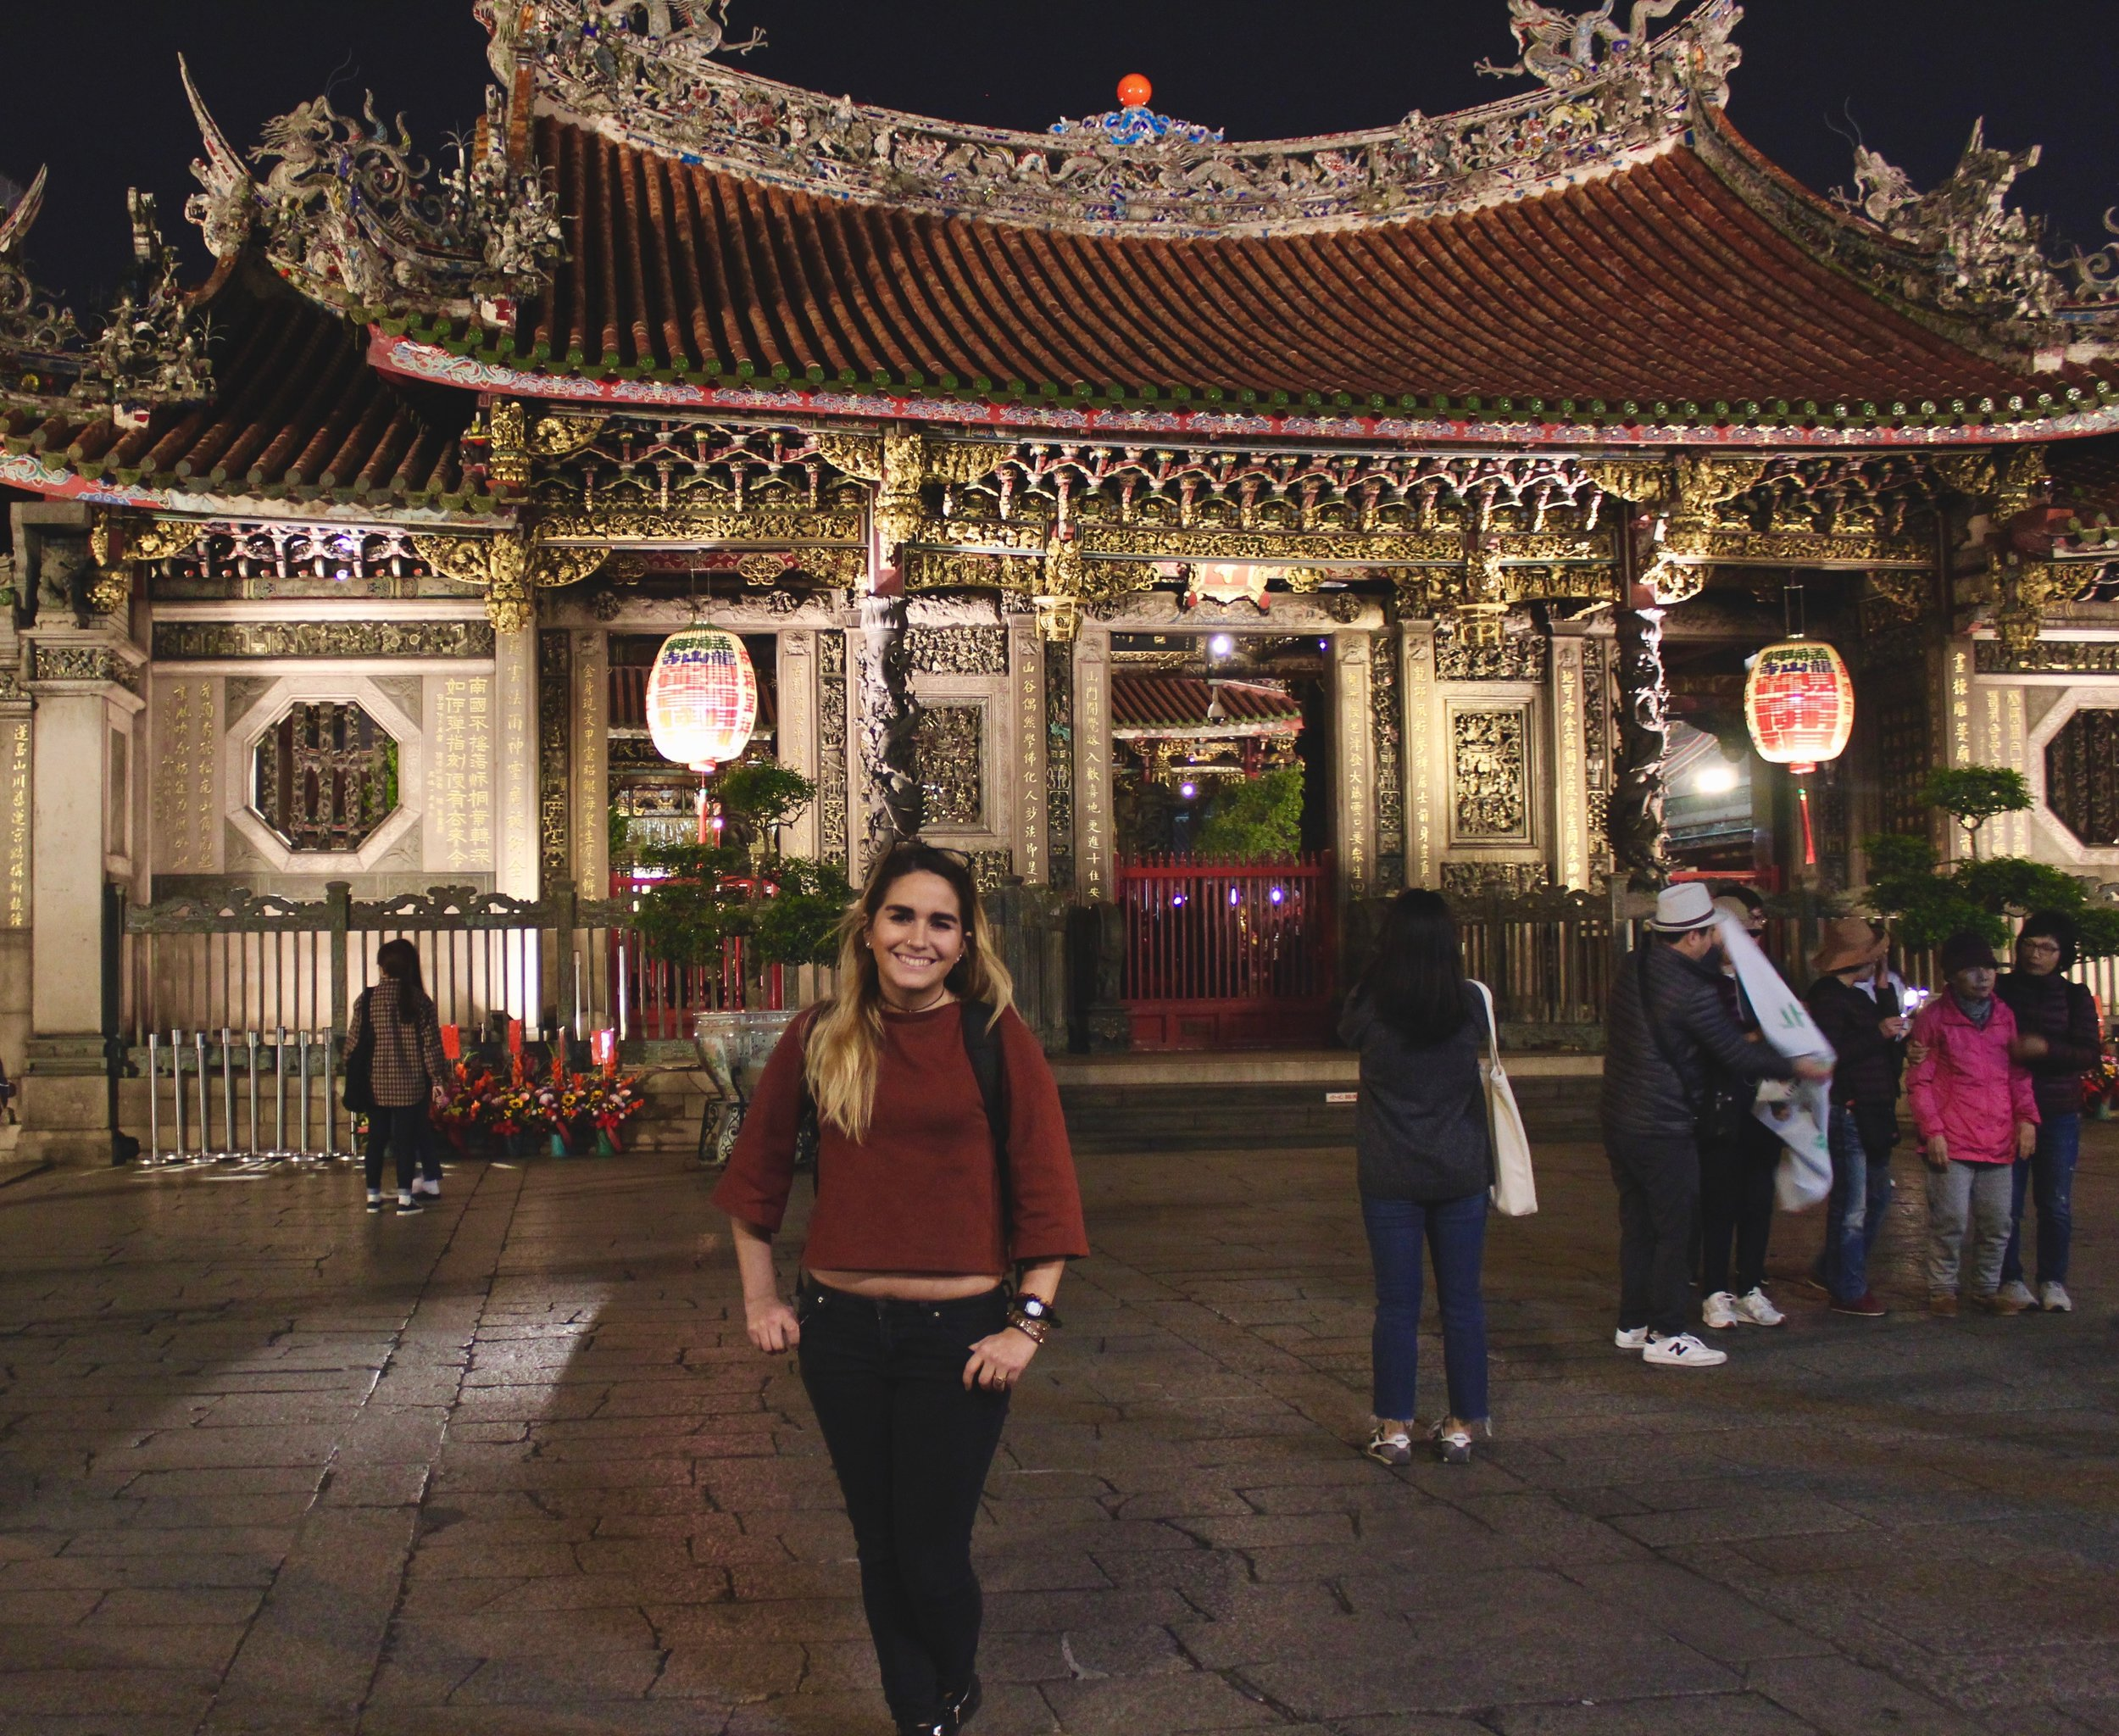 Myself in front of the Longshan Temple entrance.